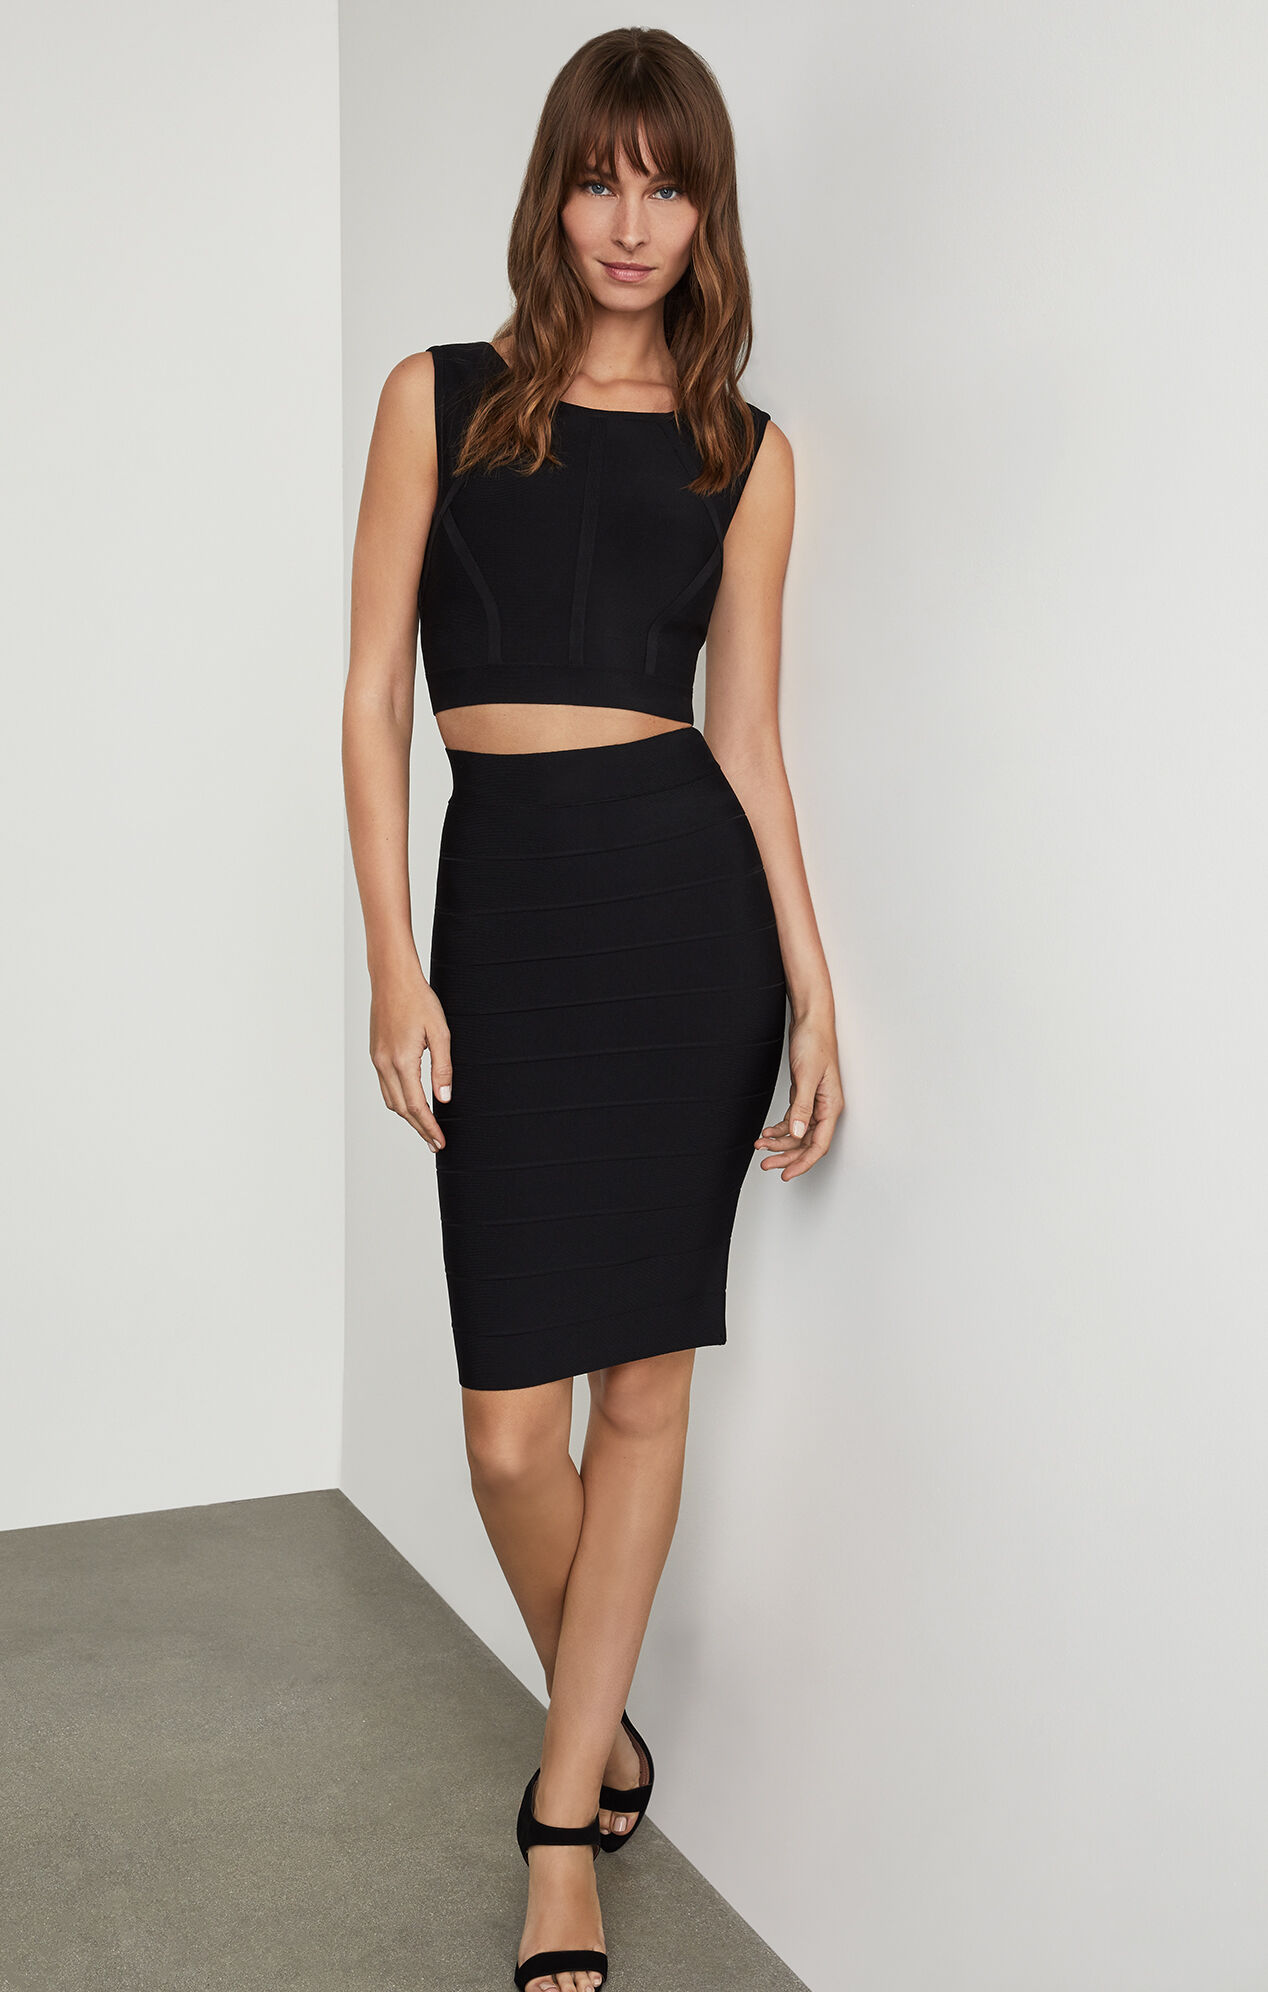 Discover pencil skirts at ASOS. From bodycon to tube skirts, shop your favorite colors and styles. The streamline pencil skirt remains an elegant classic. your browser is not supported. To use ASOS, we recommend using the latest versions of Chrome, Firefox, Safari or Internet Explorer. Marketplace;.